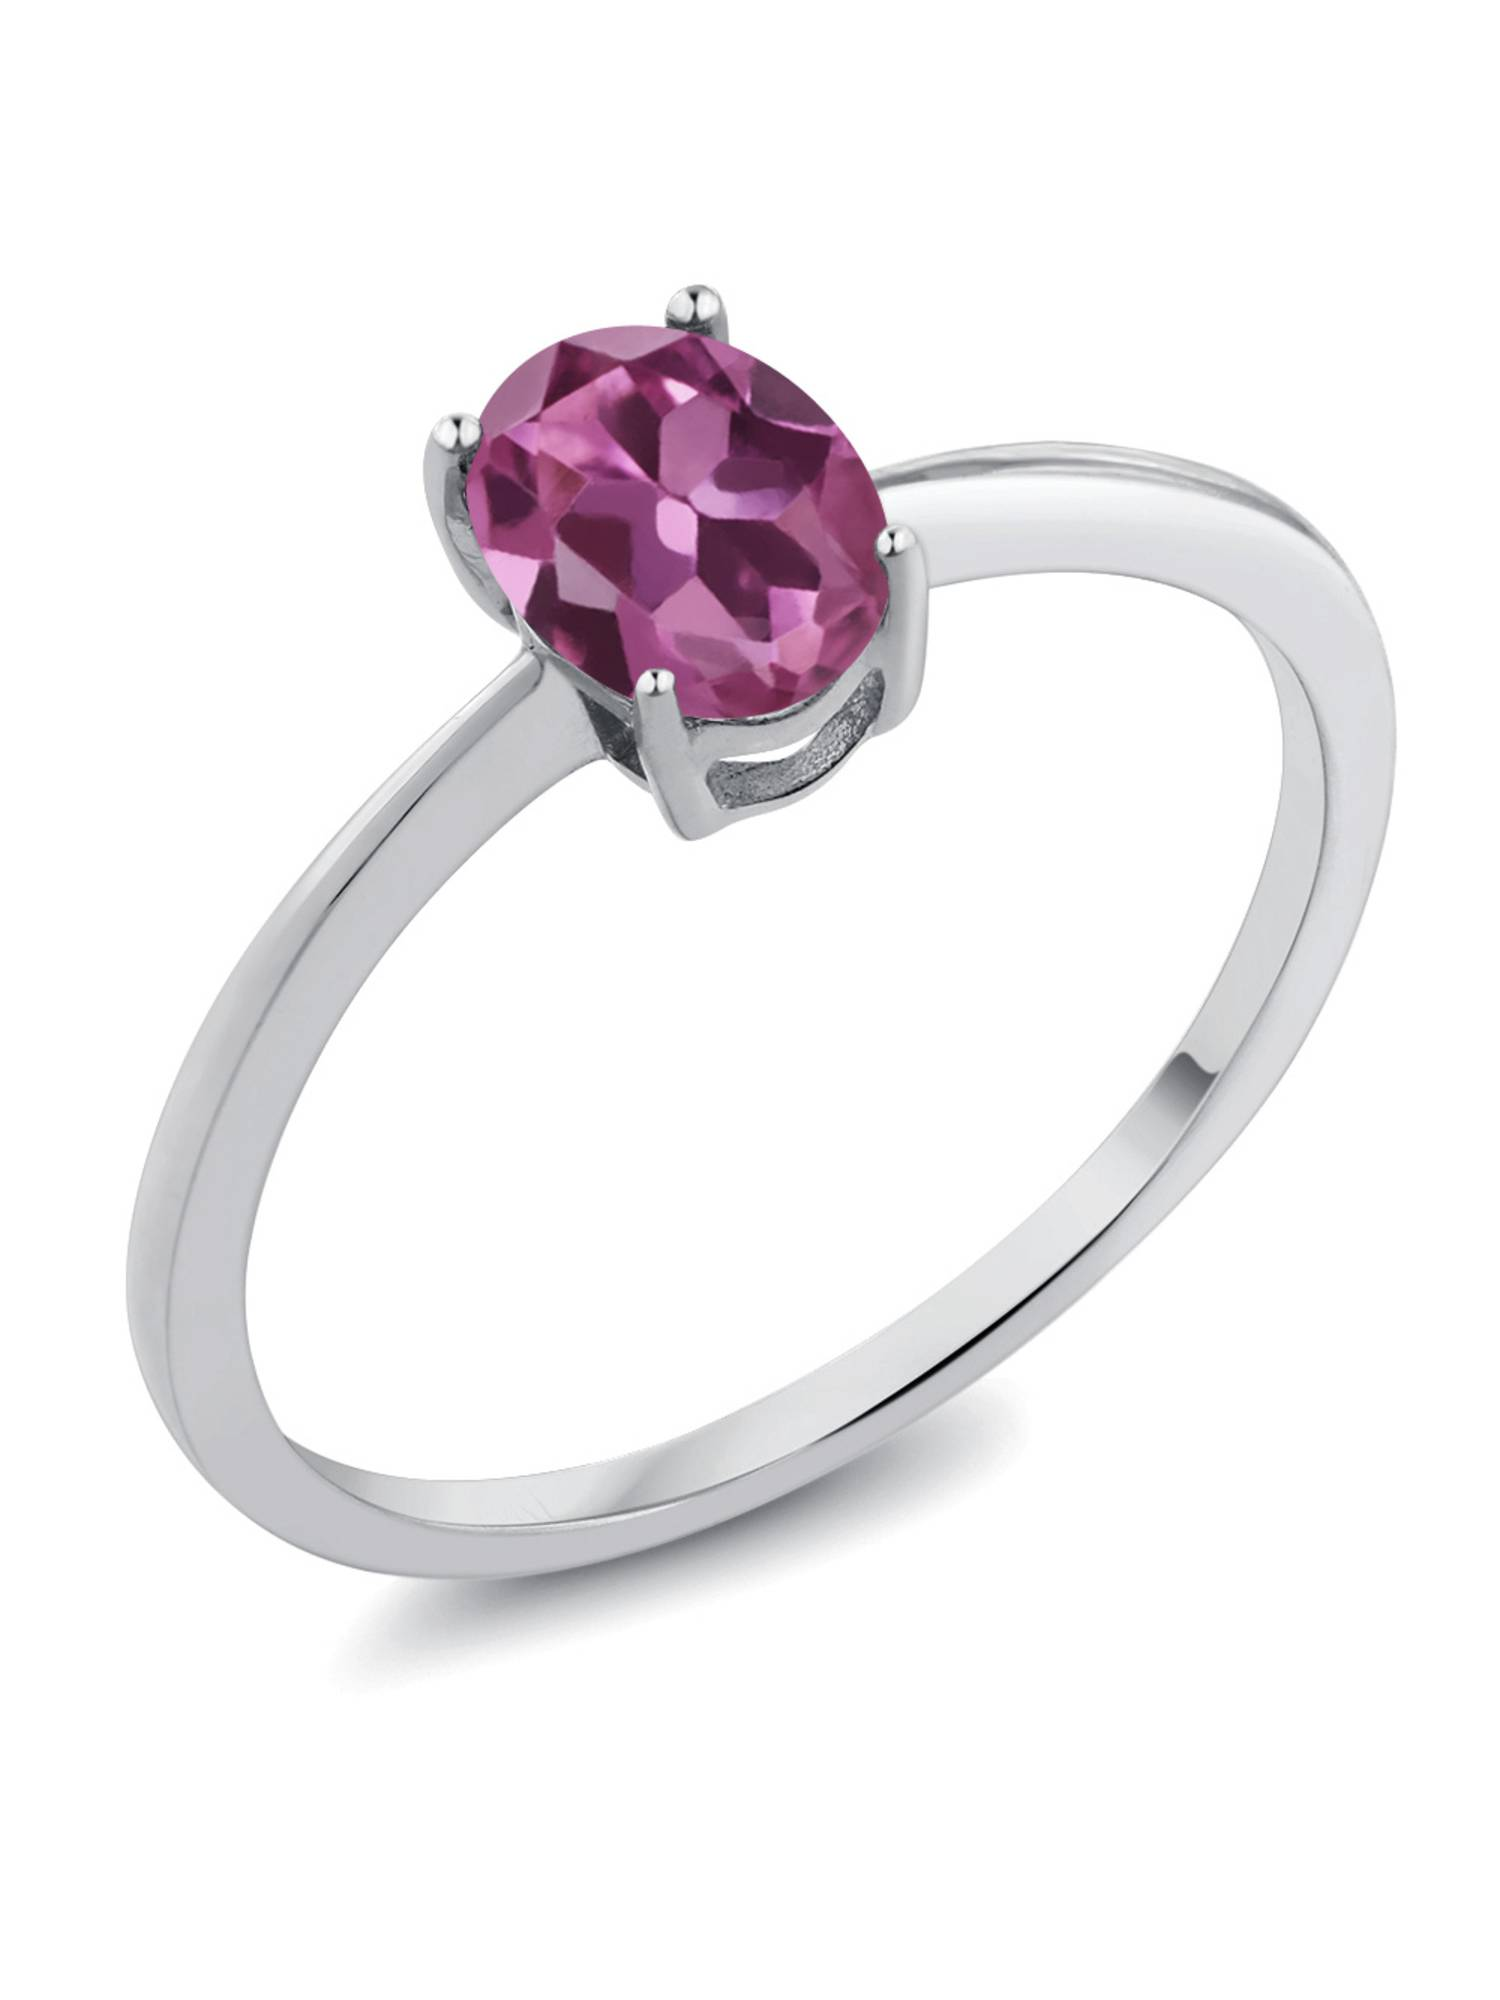 0.70 Ct Oval Pink Tourmaline AA 10K White Gold Women's Solitaire Ring by